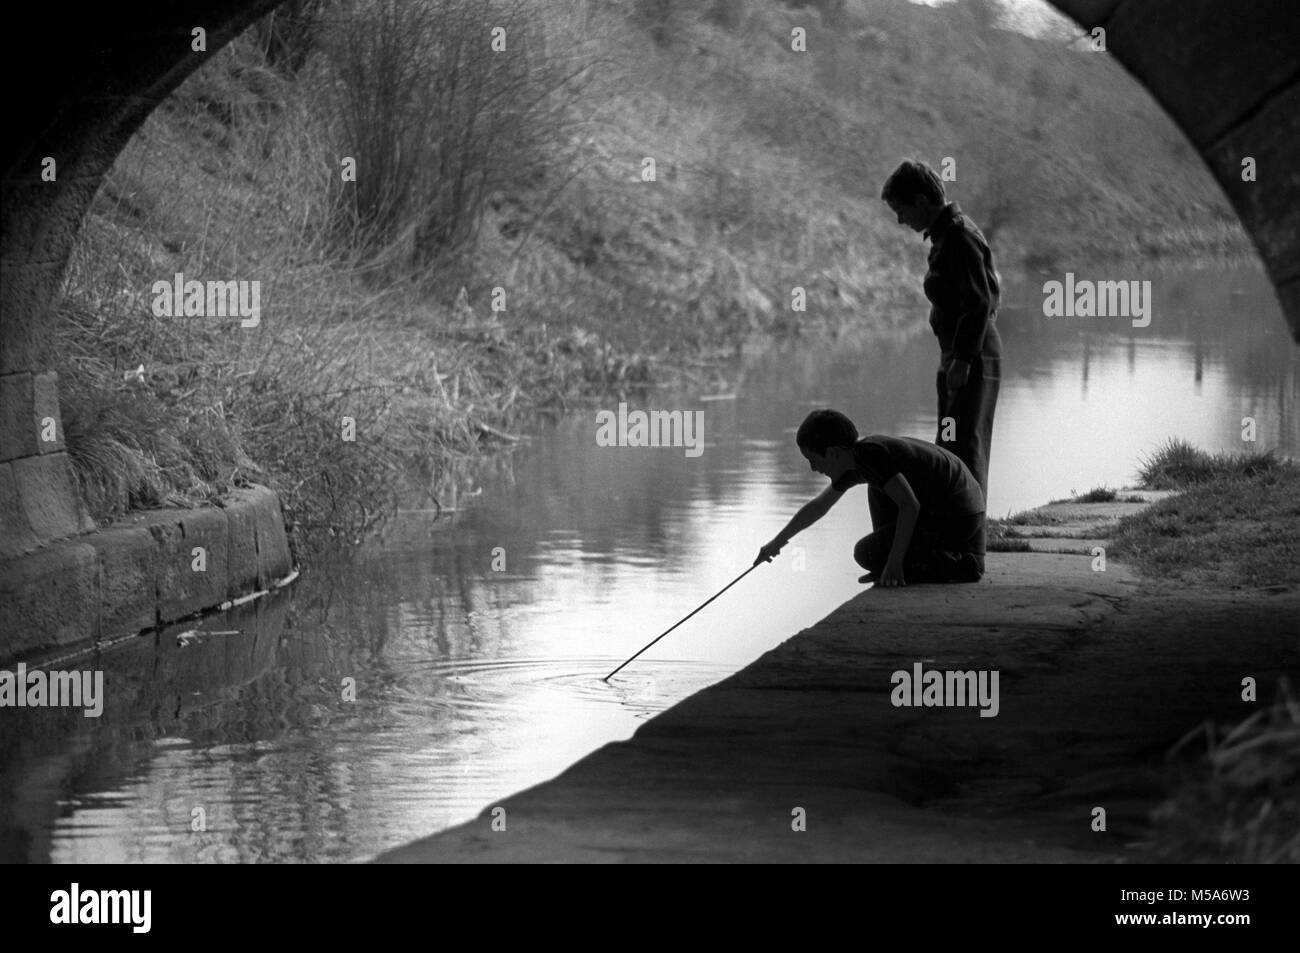 UK, England, Cheshire, Congleton, Buglawton, children playing with stick in Macclesfield Canal - Stock Image